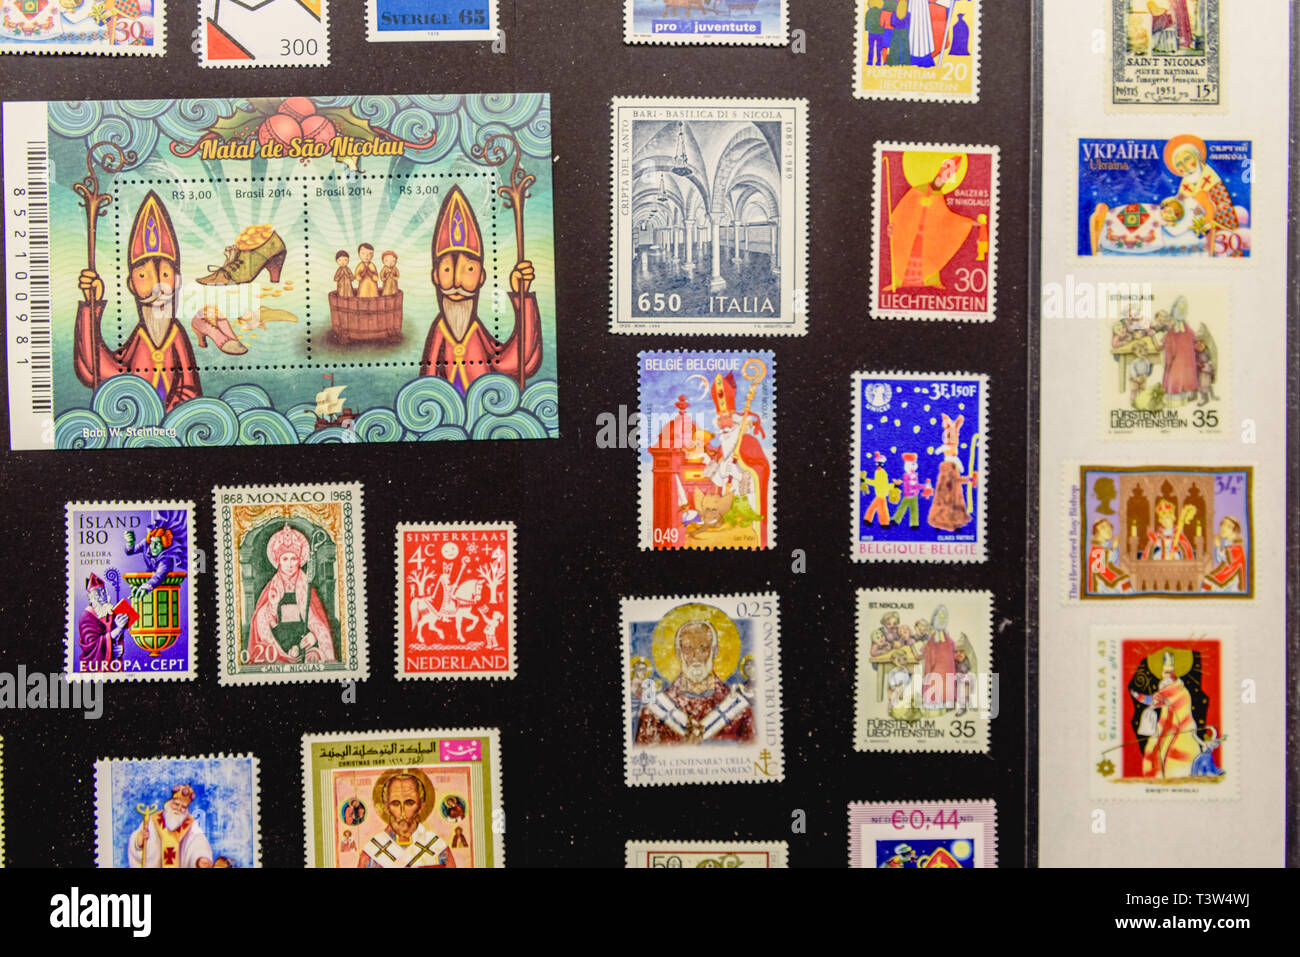 Postage Stamps Christmas 2019 Bari, Italy   March 8, 2019: Collection of stamps with Christmas